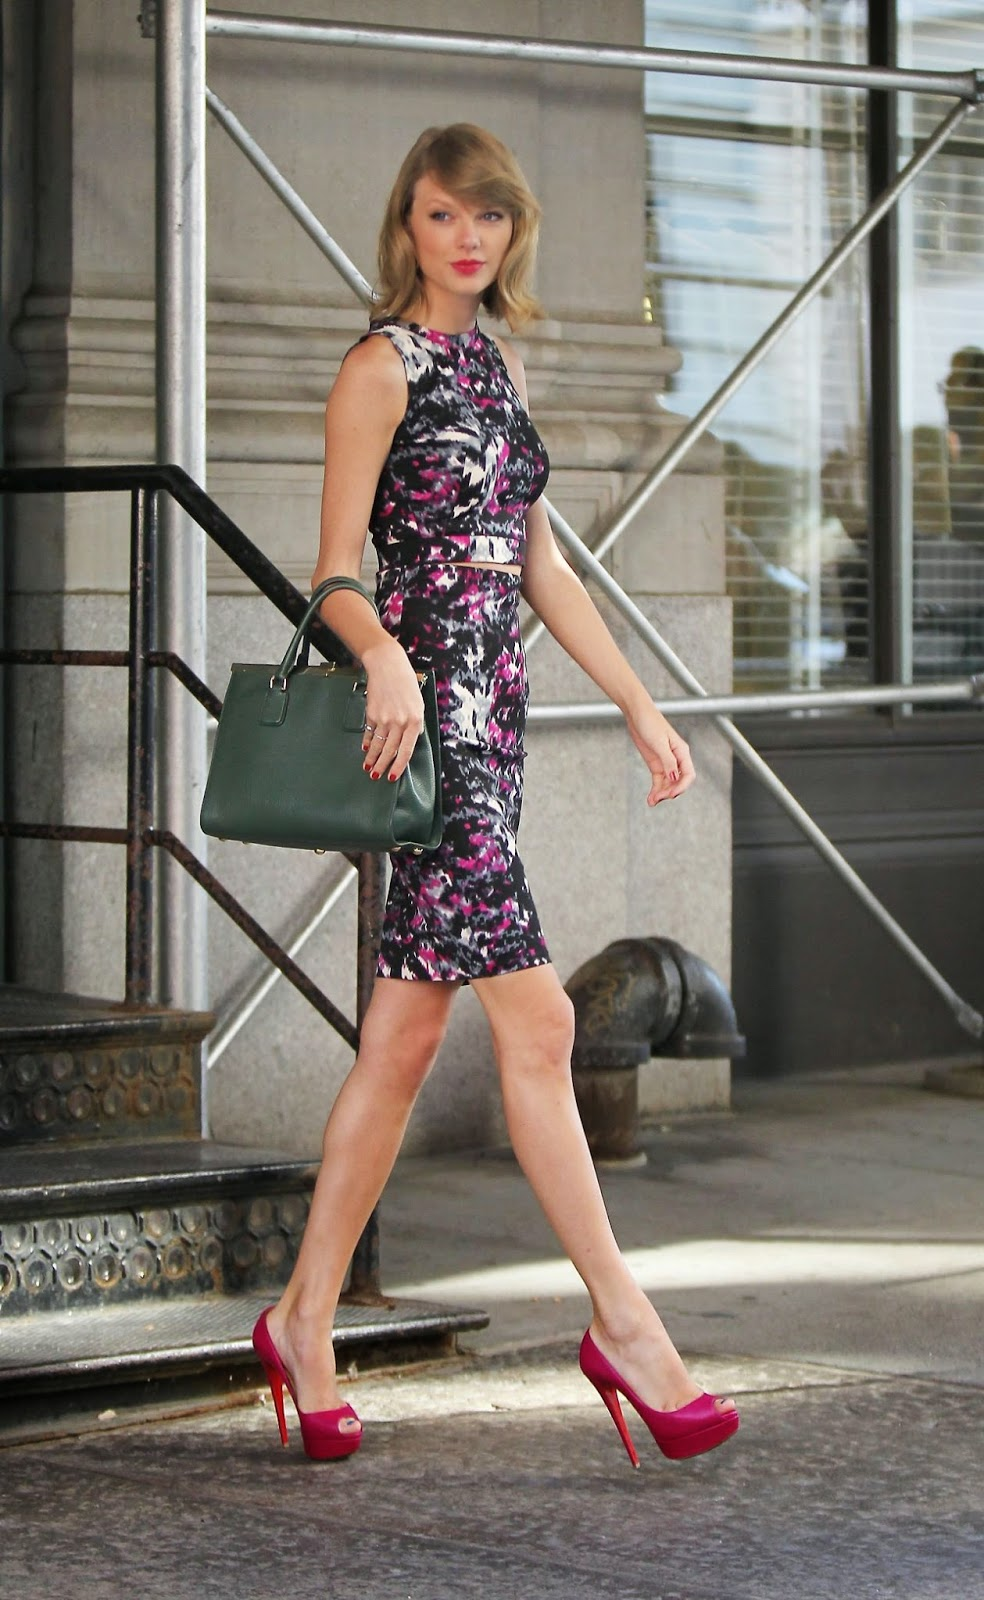 Taylor Swift flaunts floral dress and towering pink pumps out and about in New York City